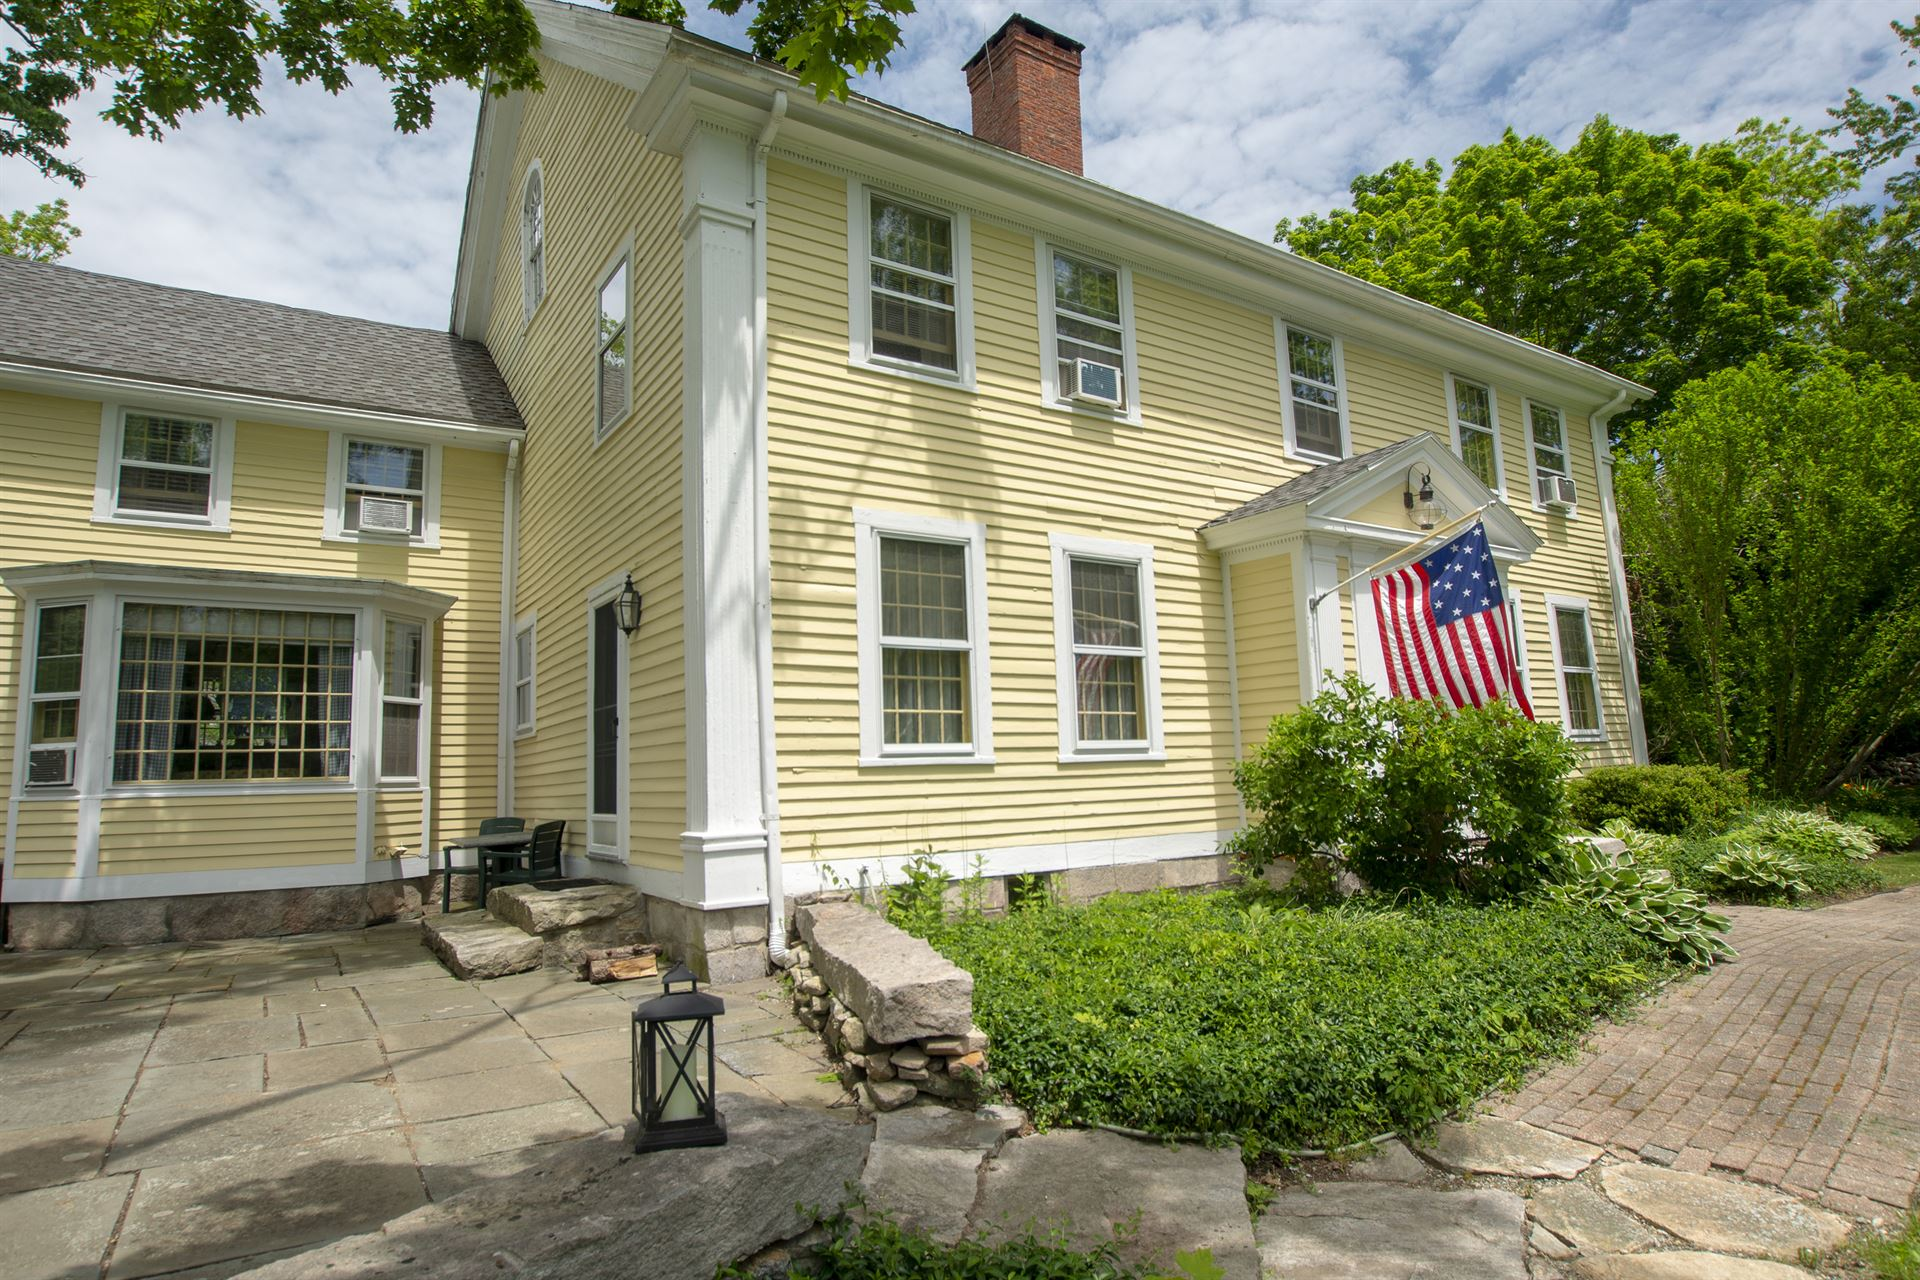 view of house with American Flag